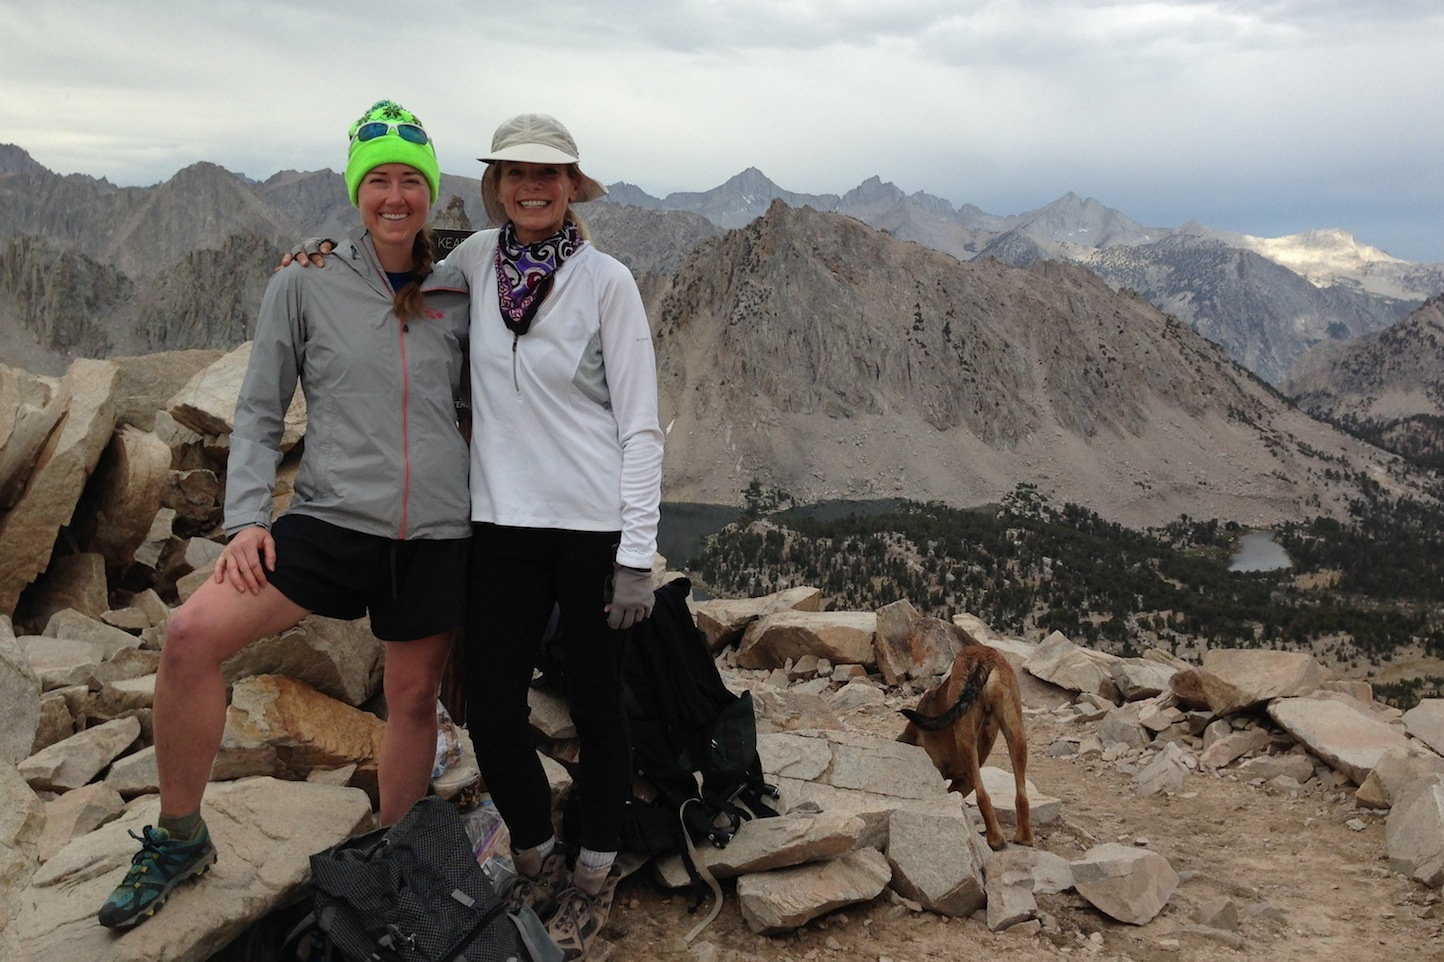 JMT hiker Pam with Strider and Indy on Kearsarge Pass on a cool, rainy July 30th.